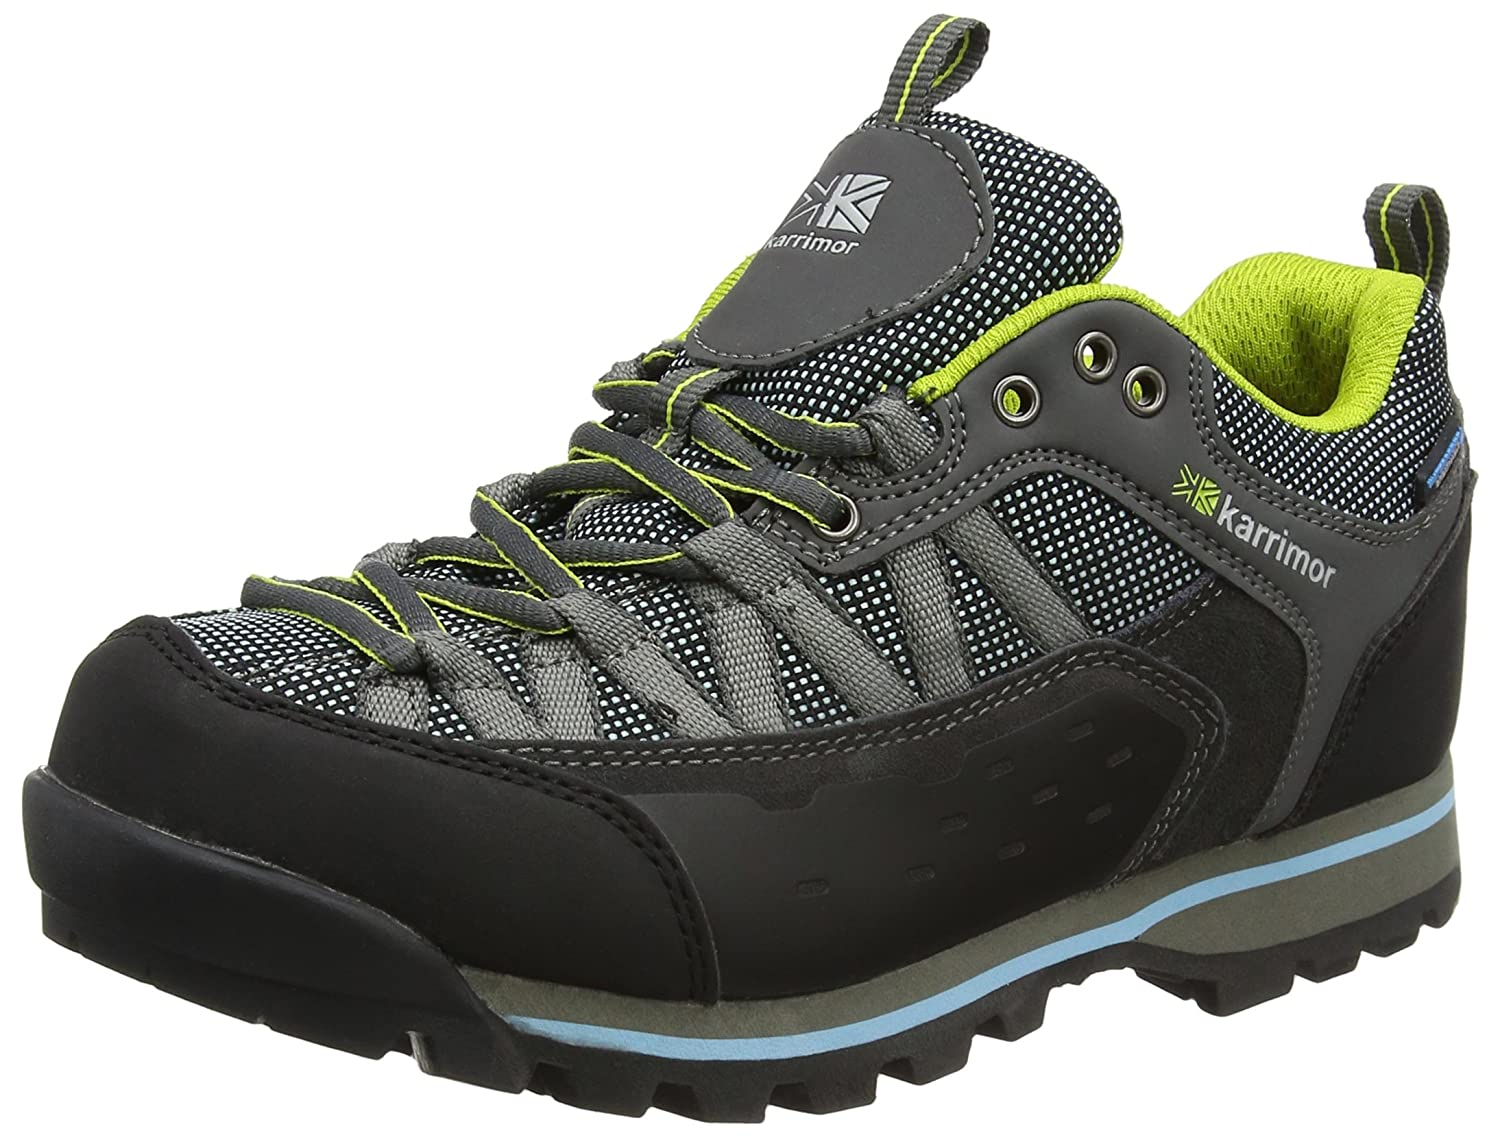 TALLA 41 EU. Karrimor Spike Low 2 Ladies Weathertite, Zapatillas de Senderismo para Mujer